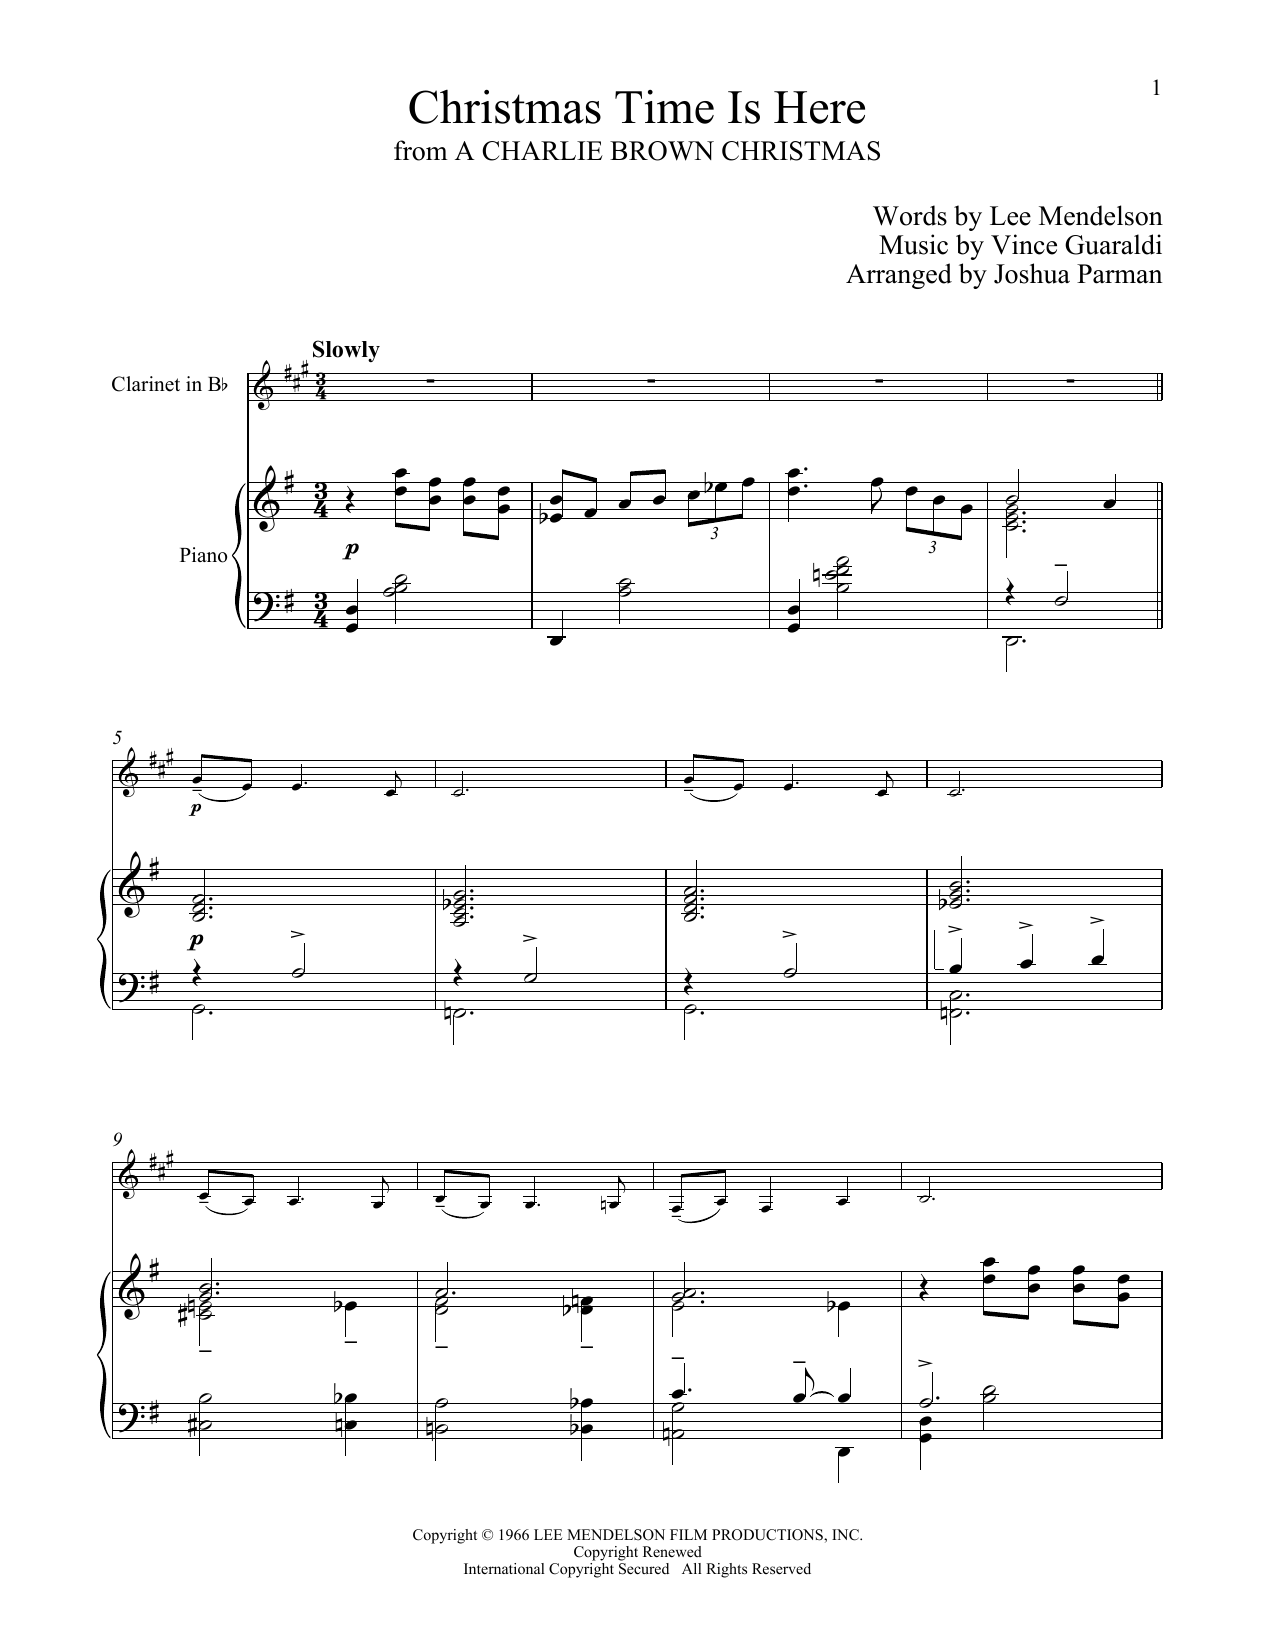 Christmas Time Is Here Sheet Music | Vince Guaraldi | Clarinet and Piano